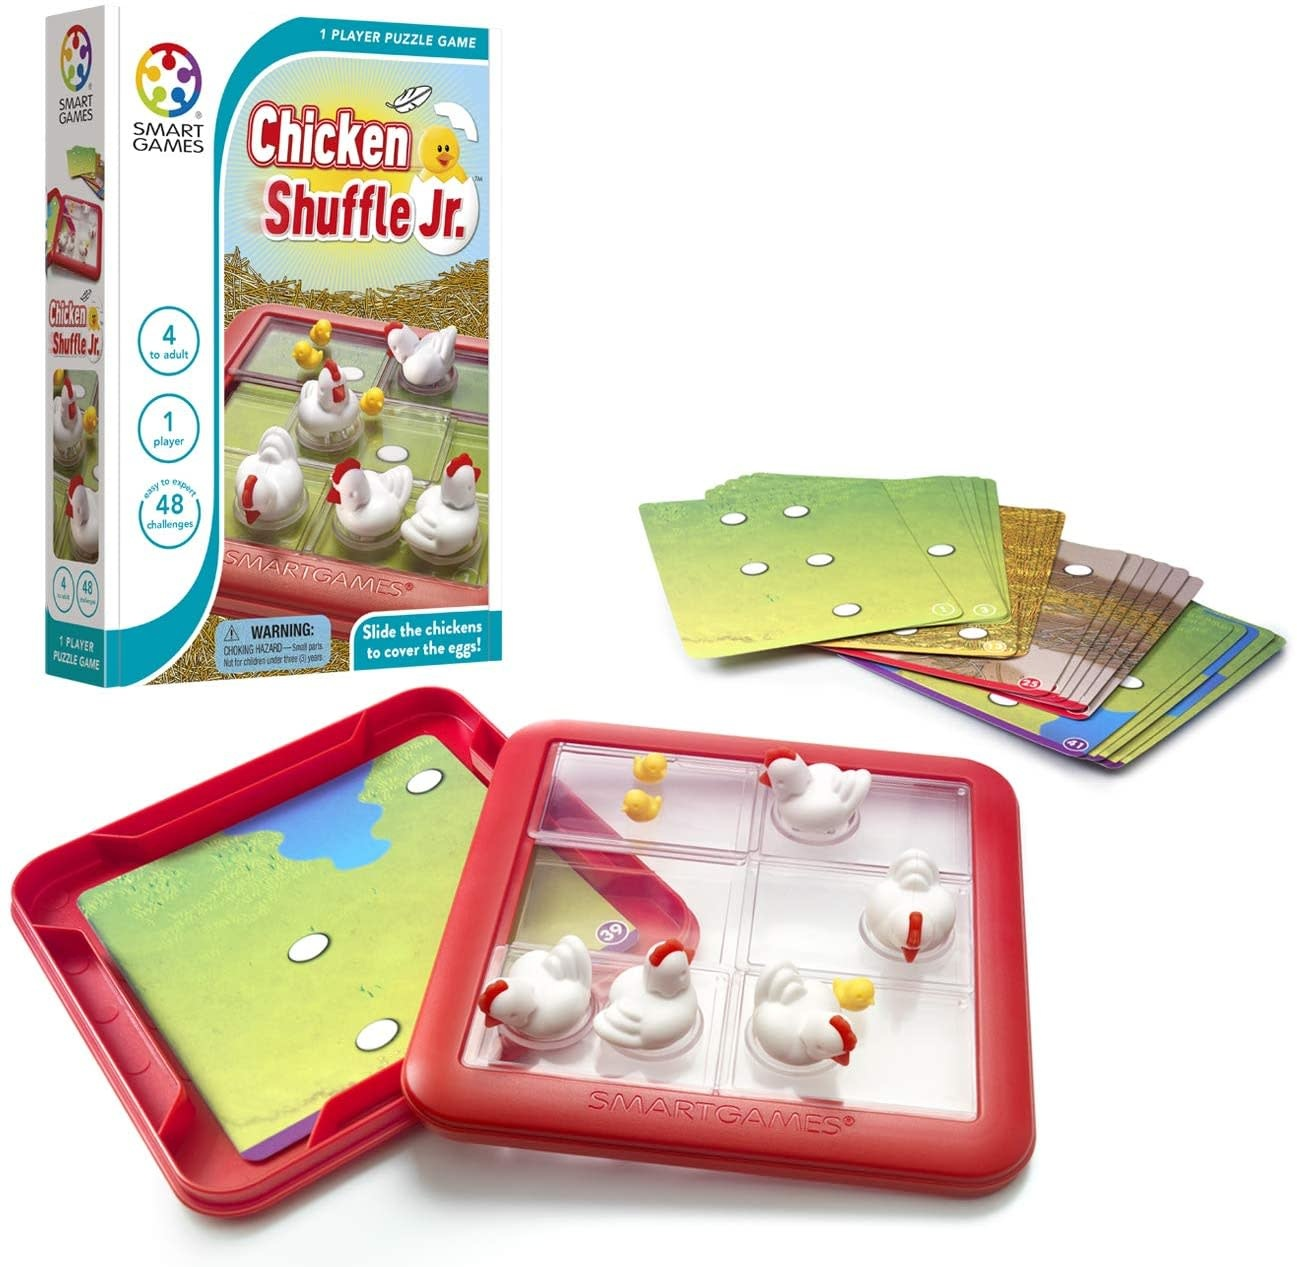 Chicken Shuffle Jr. by SmartGames